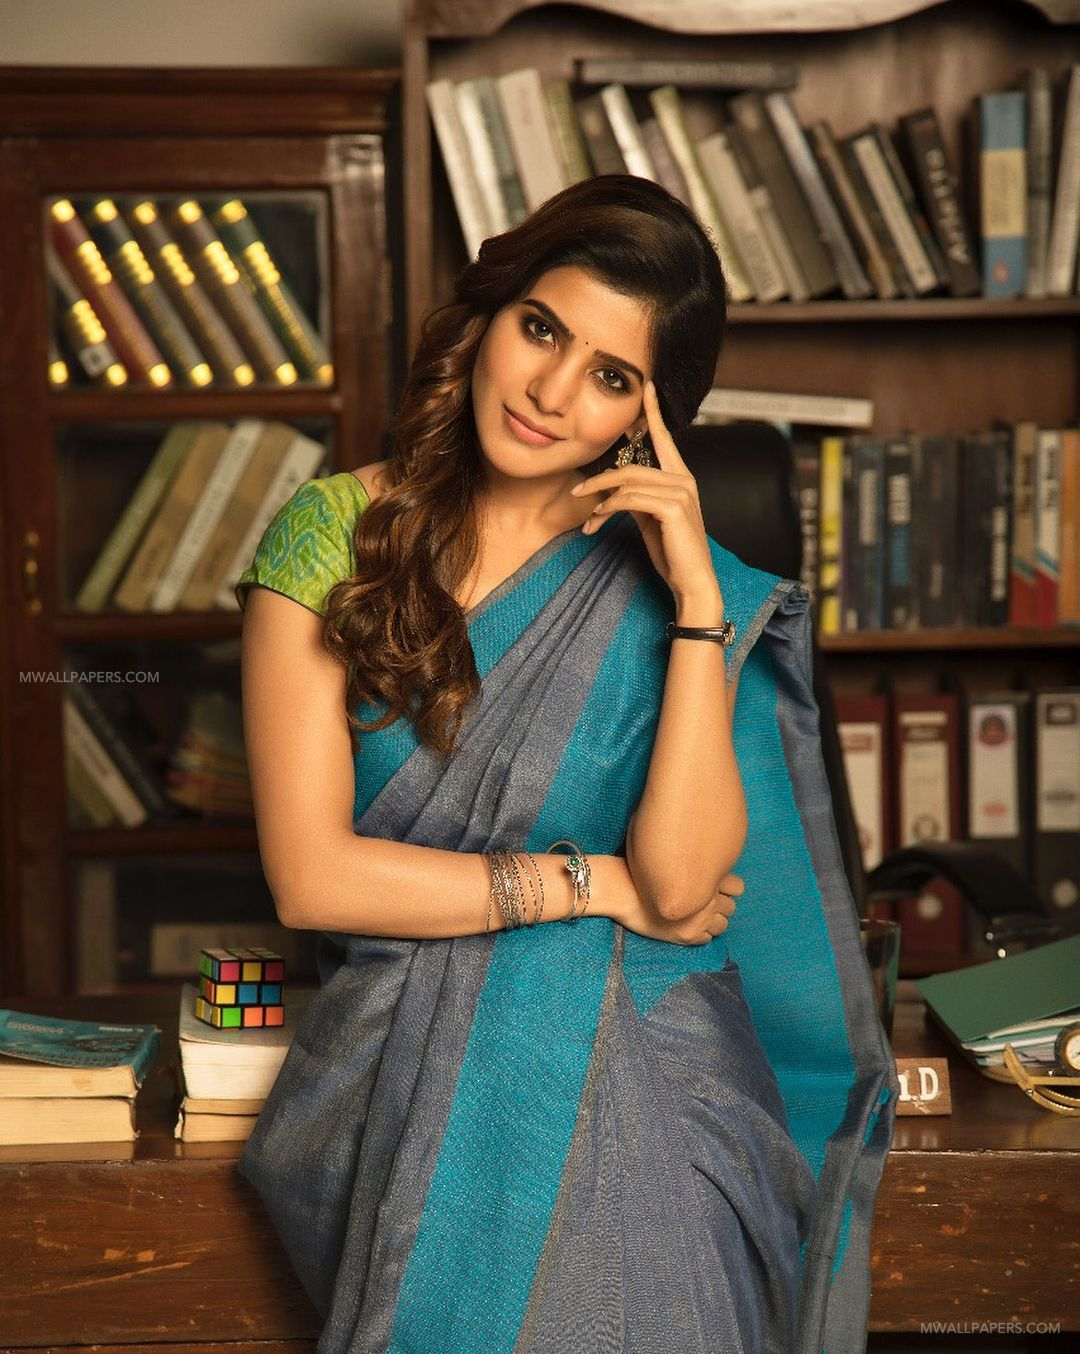 Samantha HD Wallpapers (Desktop Background / Android / iPhone) (1080p, 4k) (39247) - Samantha